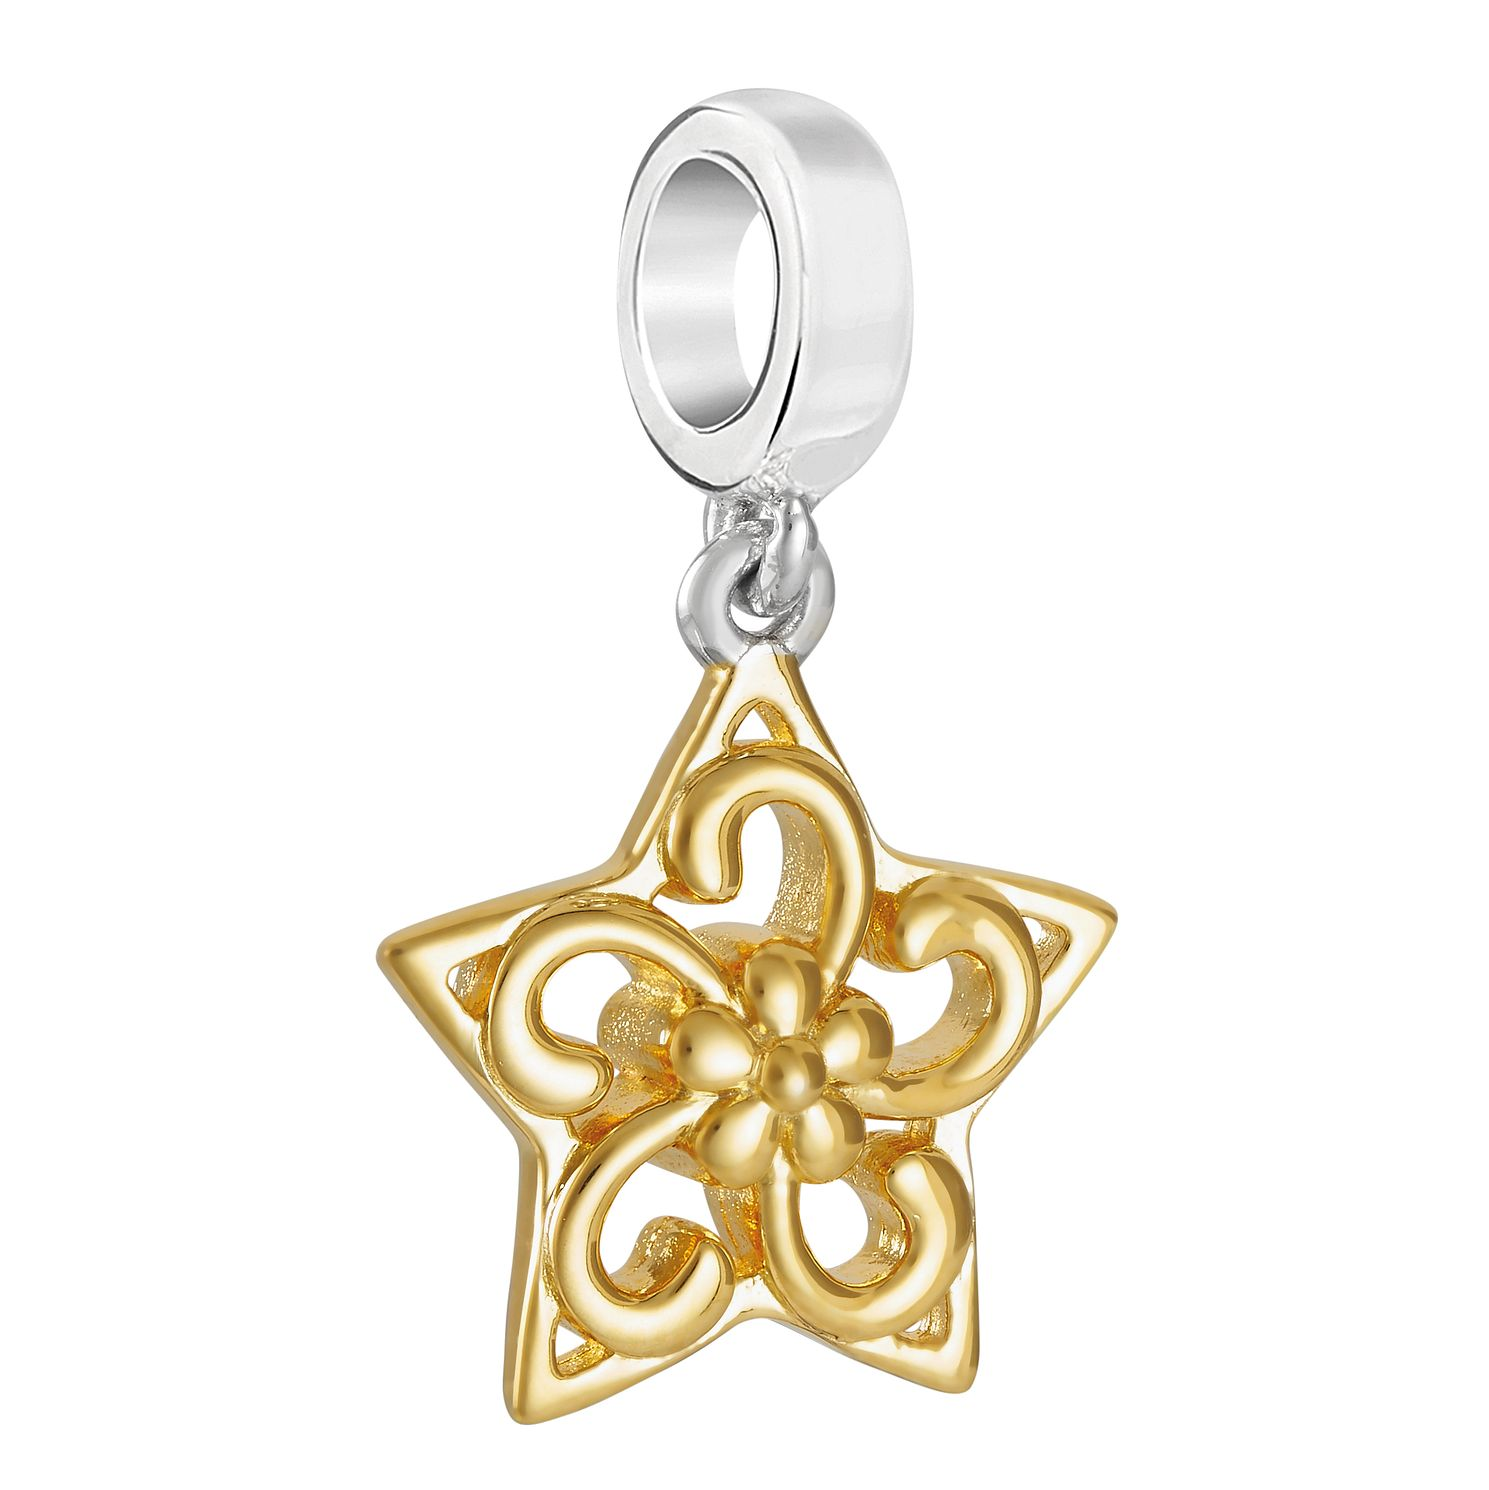 Chamilia Yellow Gold Plated Filigree Star Charm - Product number 9426477